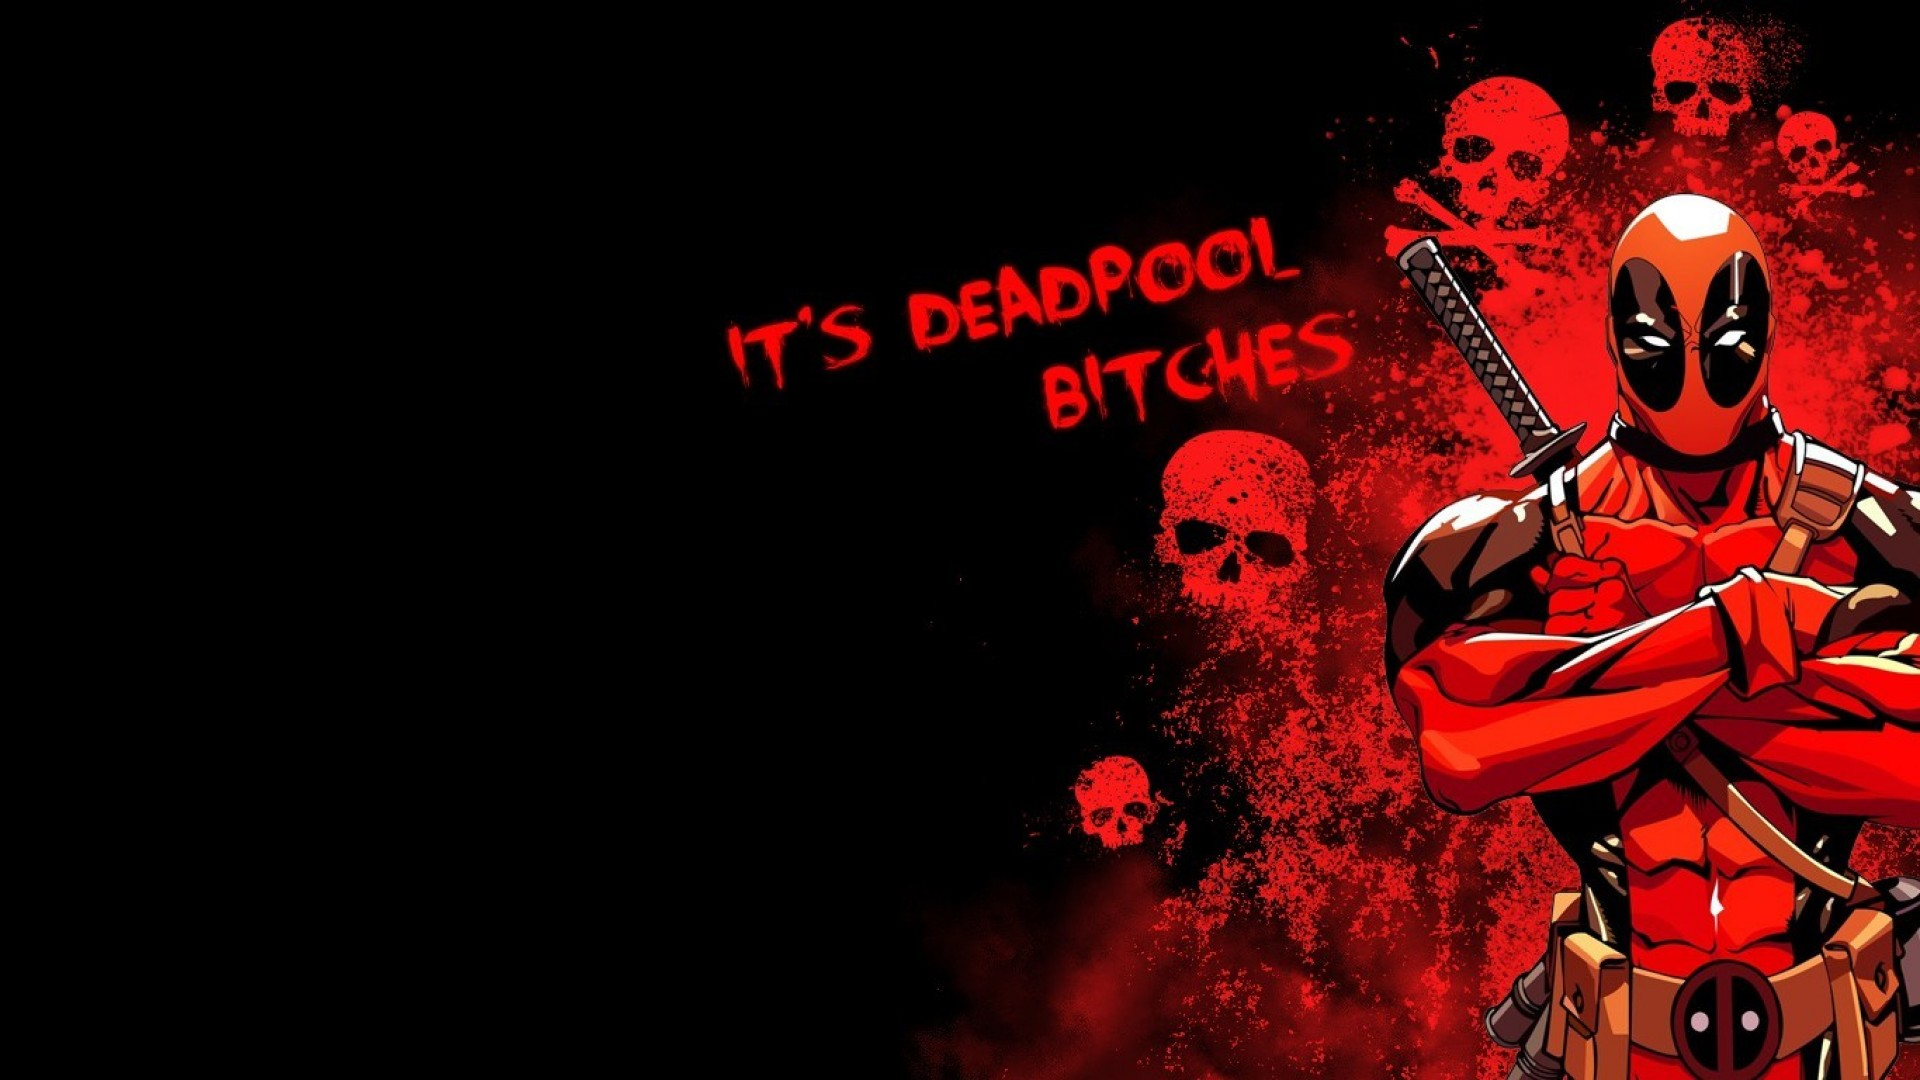 Deadpool Wallpaper HD 63bud7go   Yoanucom 1920x1080